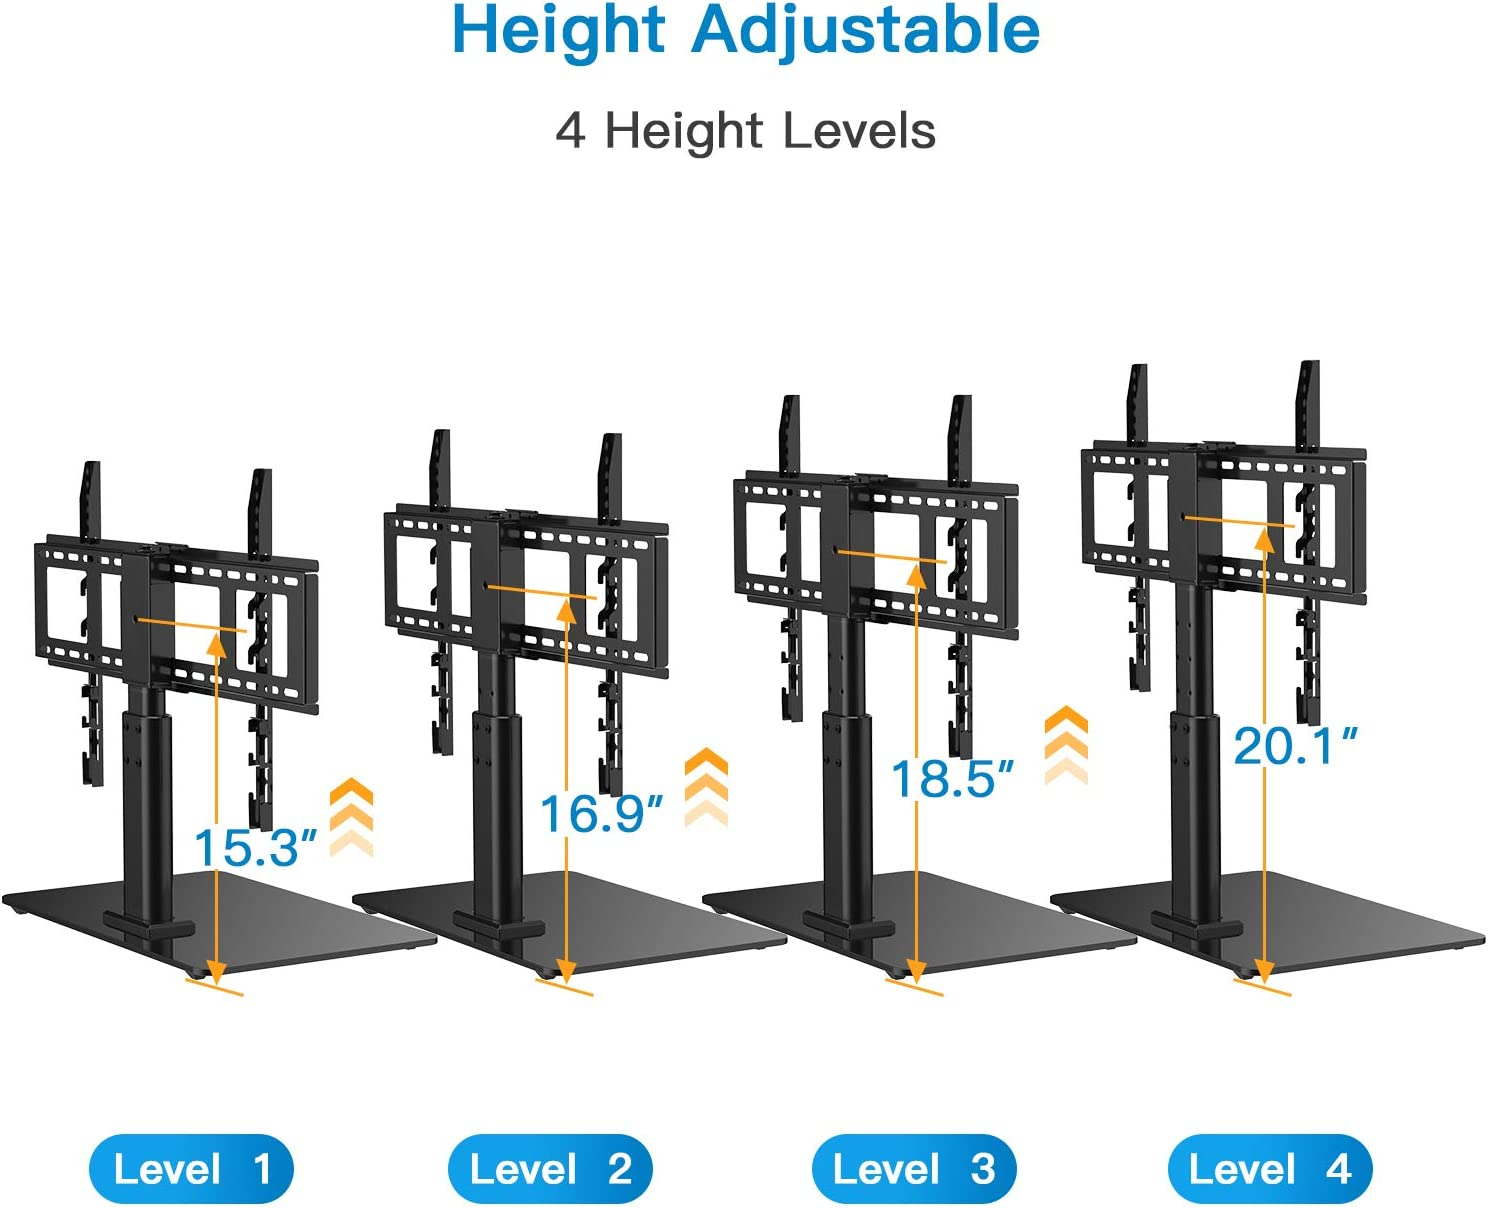 4 Height Adjustments HUANUO Universal Tabletop TV Stand Holder for 32 to 60 Inch Flat Screen Television with 70 Degrees Swivel Anti-Tip Strap Tempered Glass Base Black VESA up to 600x400